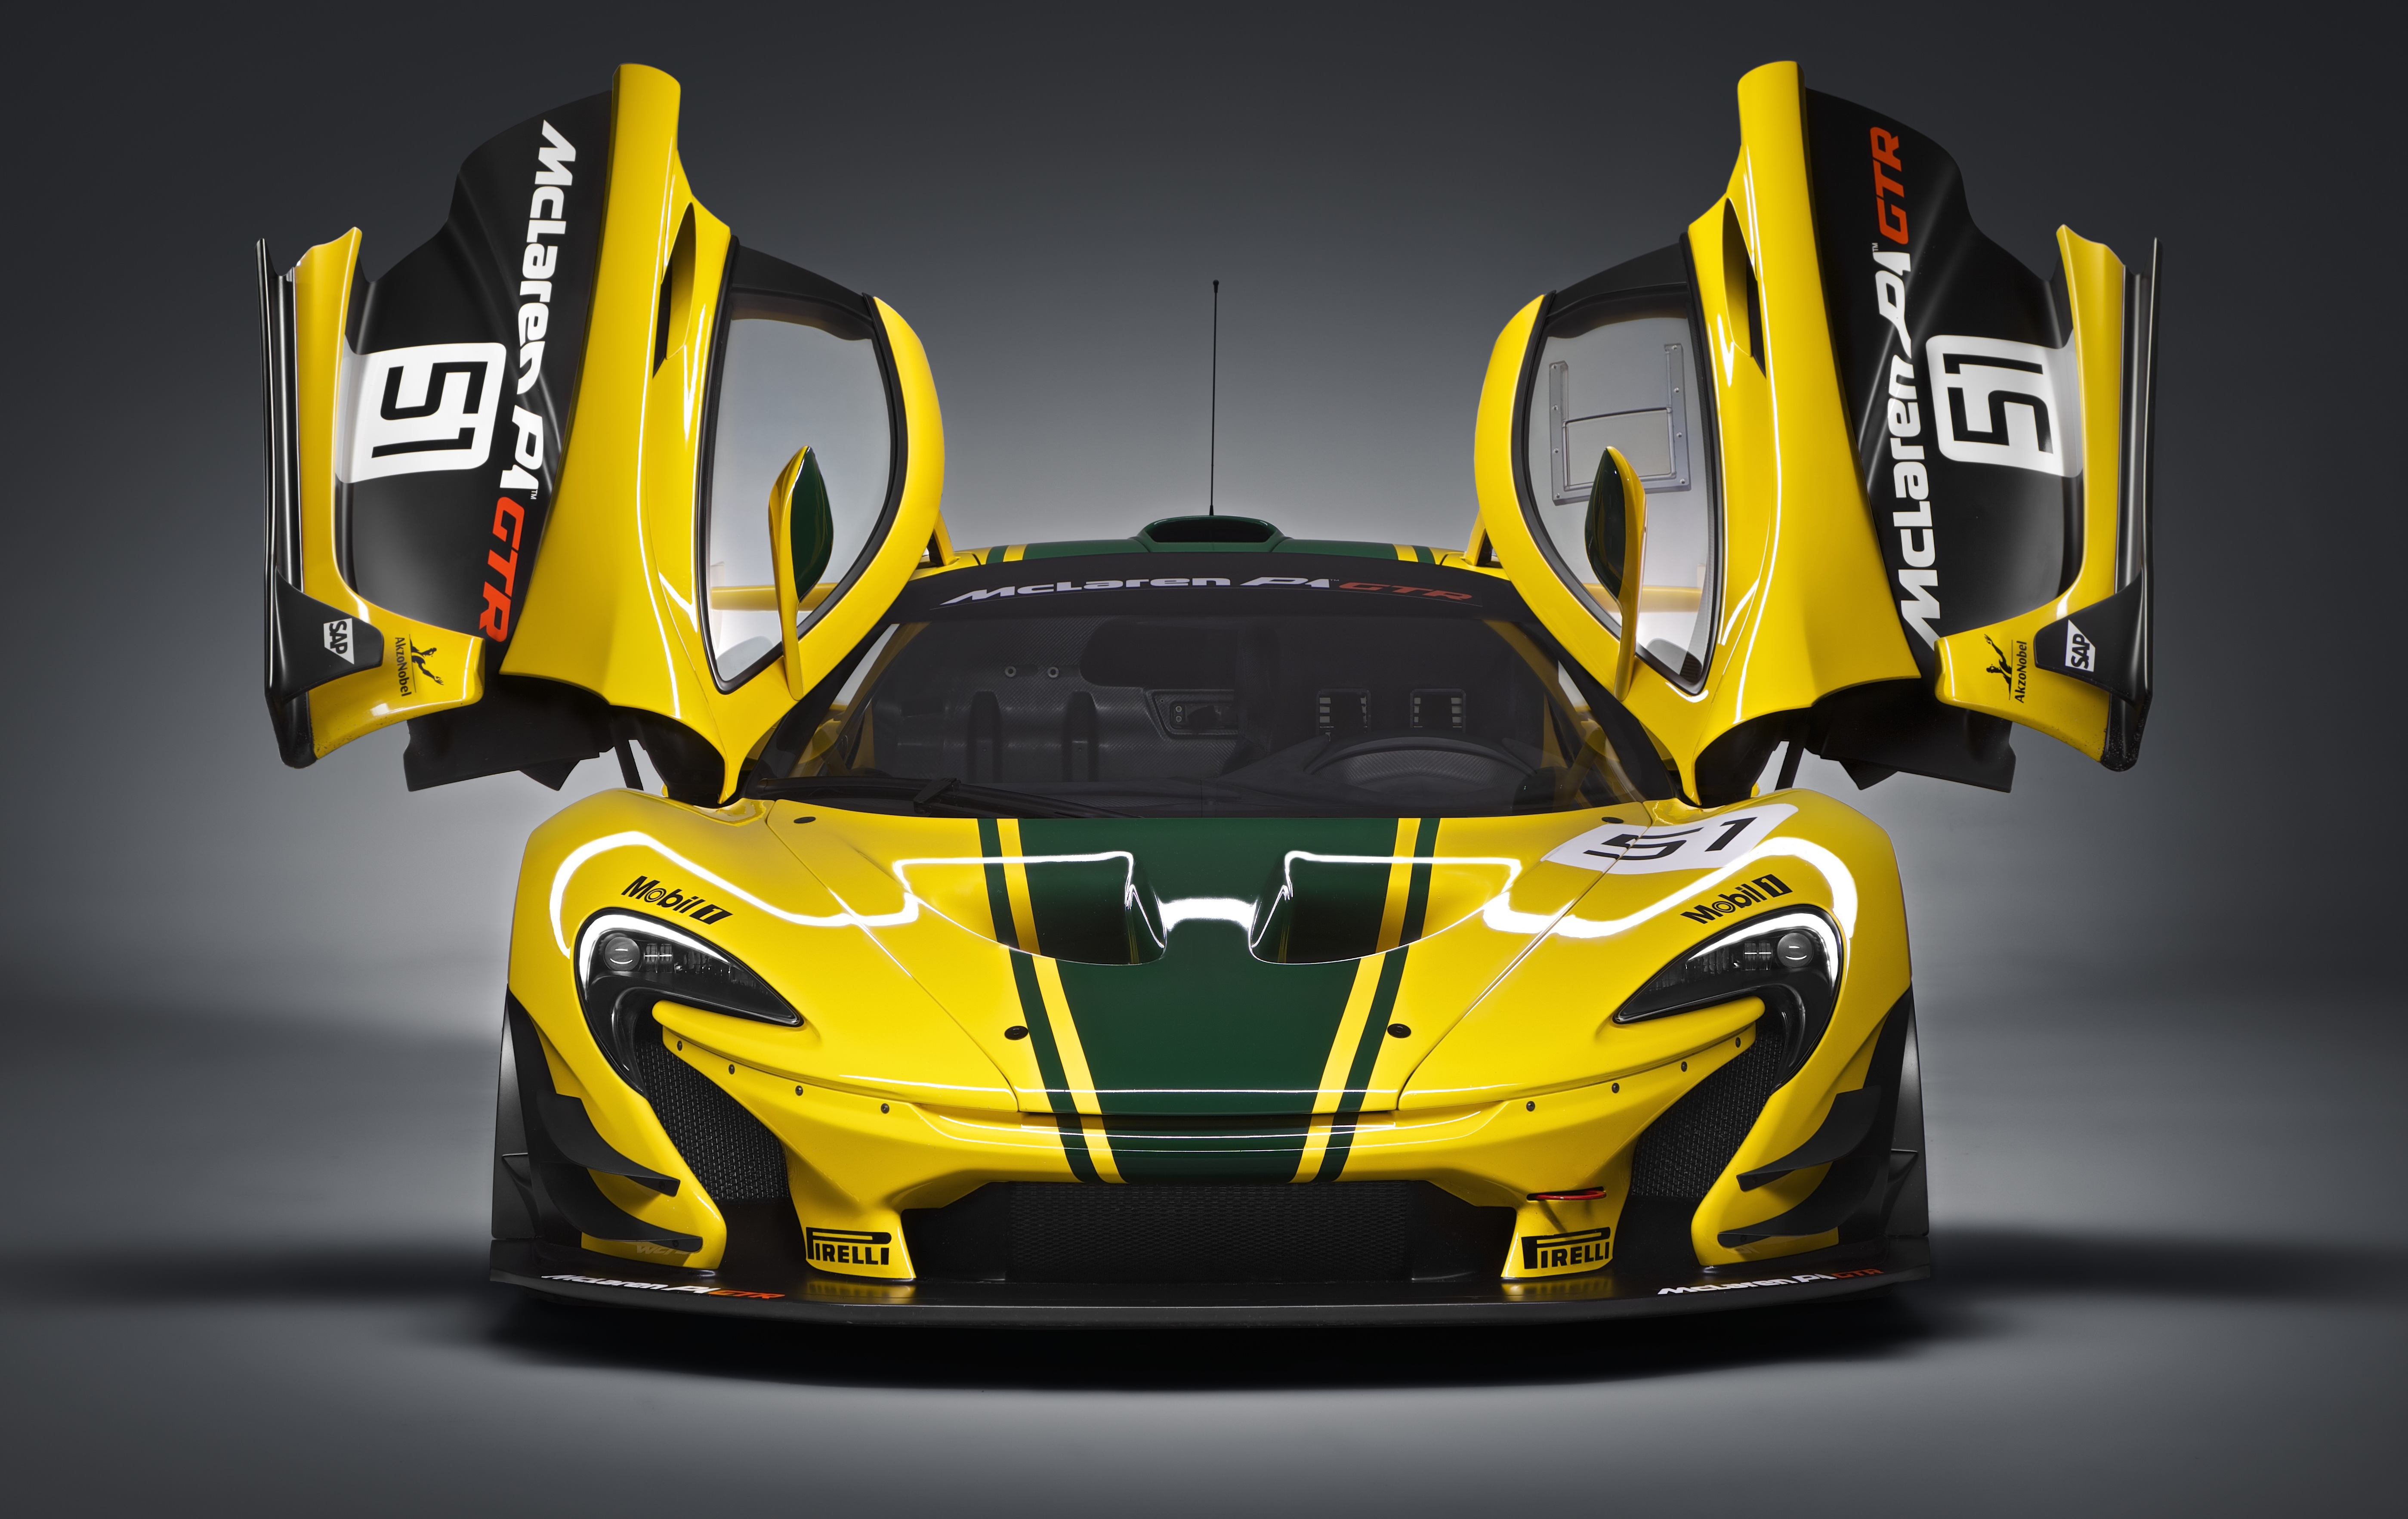 Mclaren p1 gtr extreme track weapon unveiled pictures - Mclaren P1 Gtr Extreme Track Weapon Unveiled Pictures 67